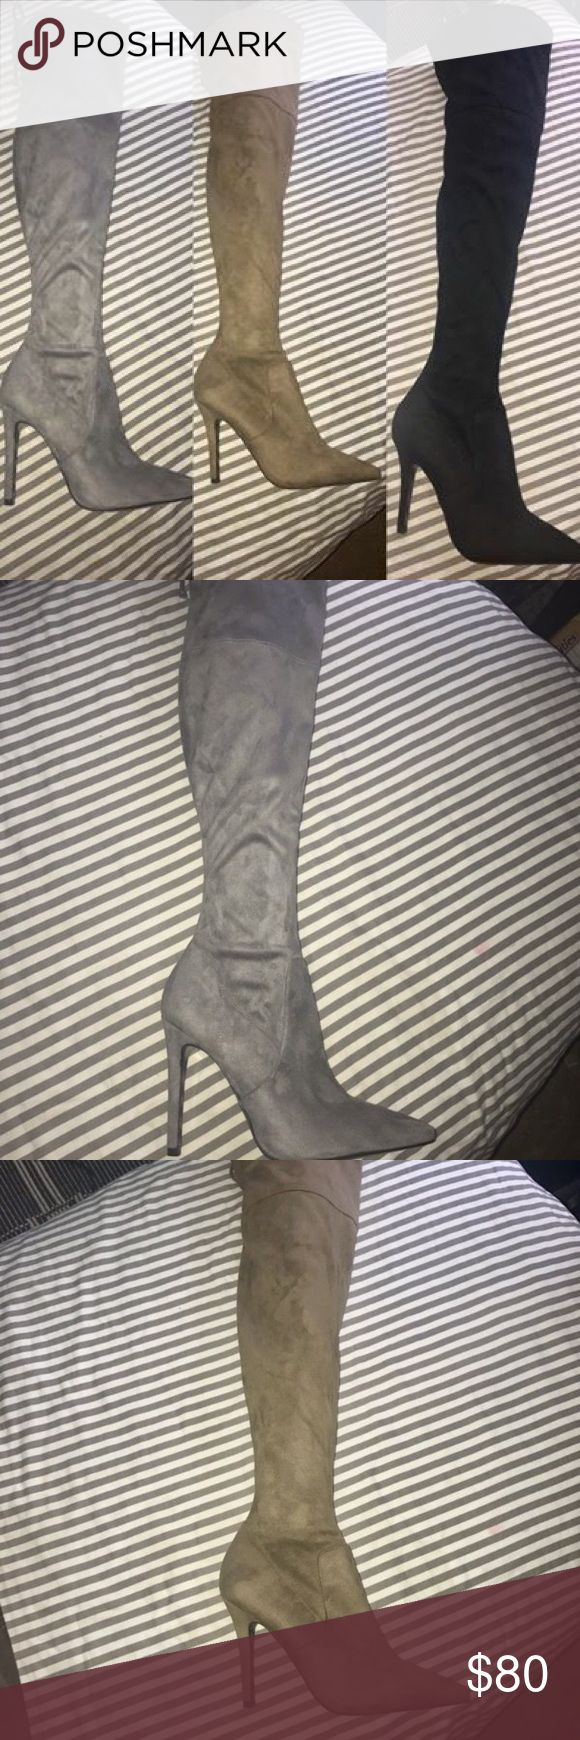 Aldo/Guess Thigh High Boots $50- Brown Aldo Thigh high boots. Size 8 1/2 Only worn once, like new condition                                          $60- Black Aldo Thigh high boots, NEVER USED Size 9 $60- Grey Guess Thigh high boots. Size 9, NEVER USED. Aldo Shoes Heeled Boots